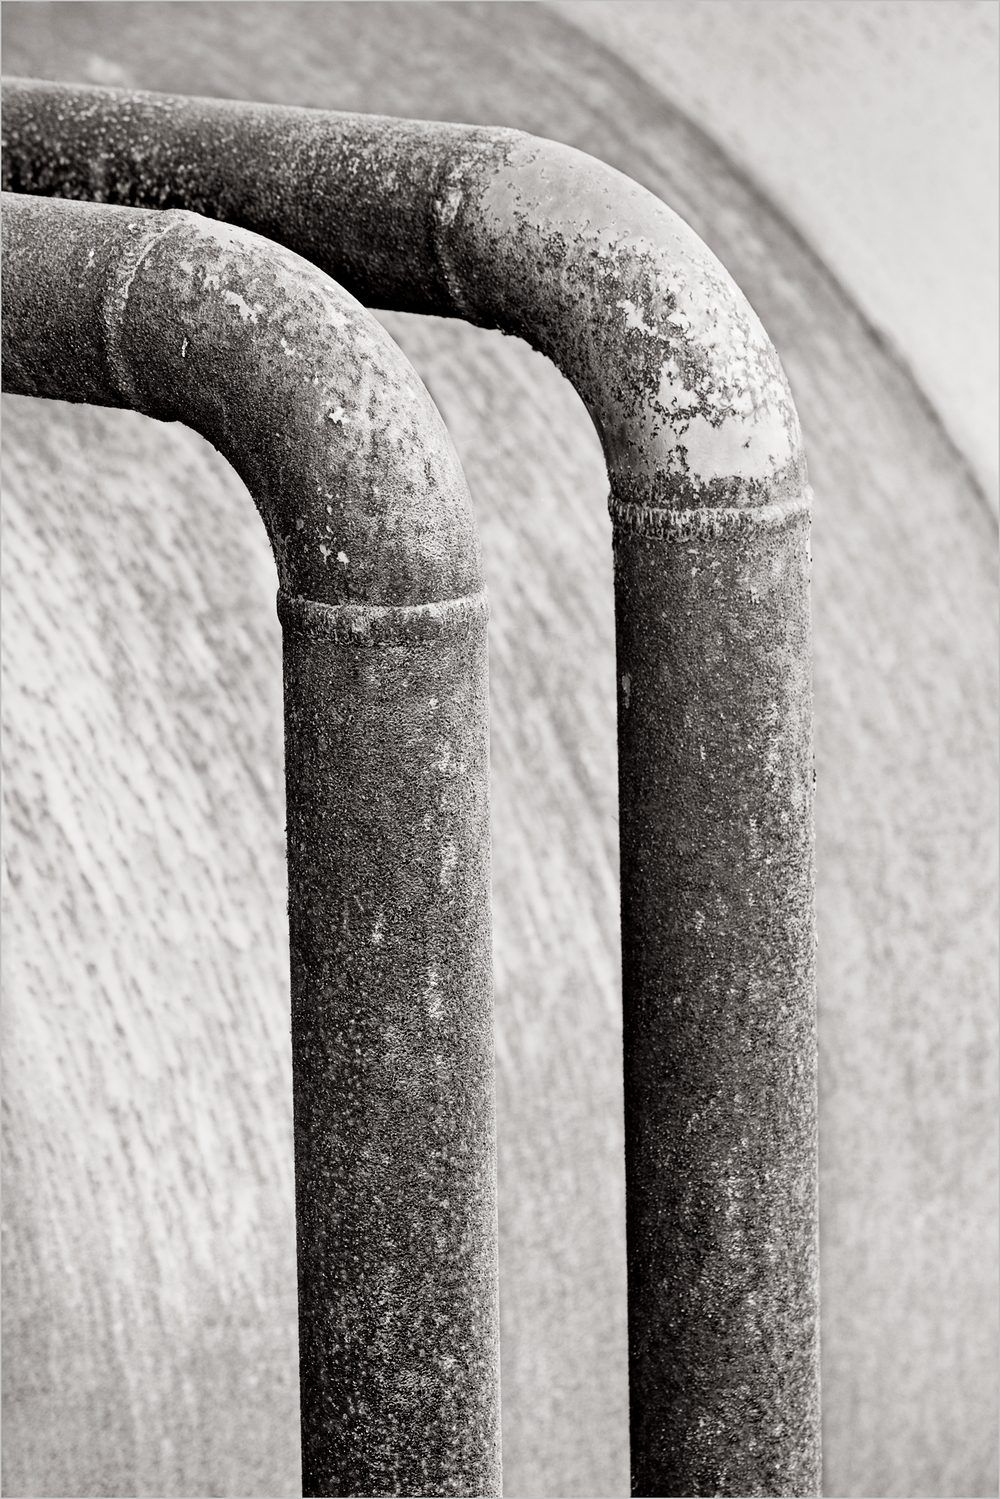 Welded pipes at the Carrie Furnace in Western Pennsylvania